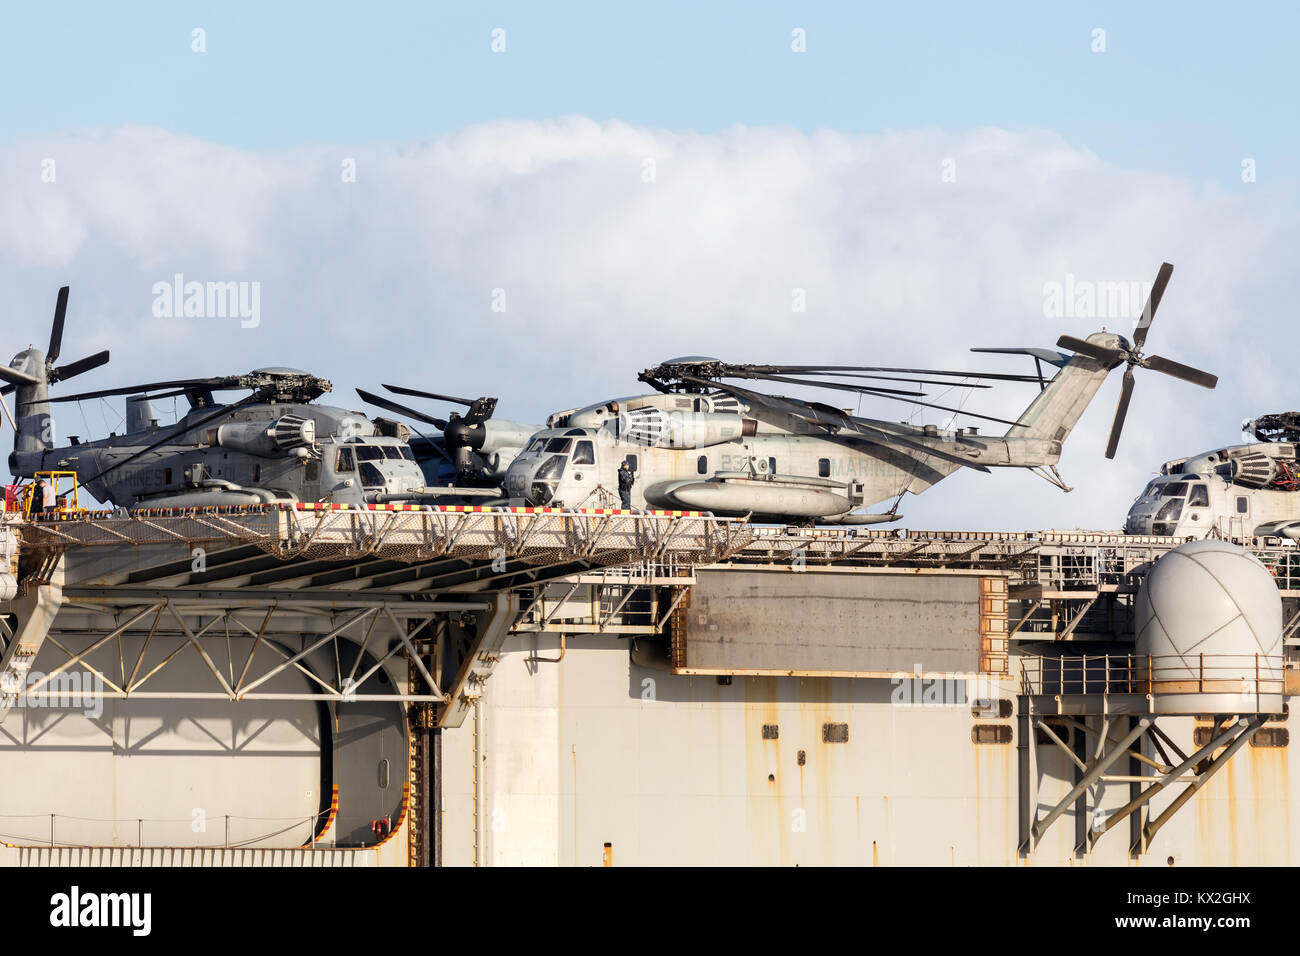 Sikorsky CH-53 heavy lift transport helicopters from the United States Marine Corps (Marine Expeditionary Unit Stock Photo